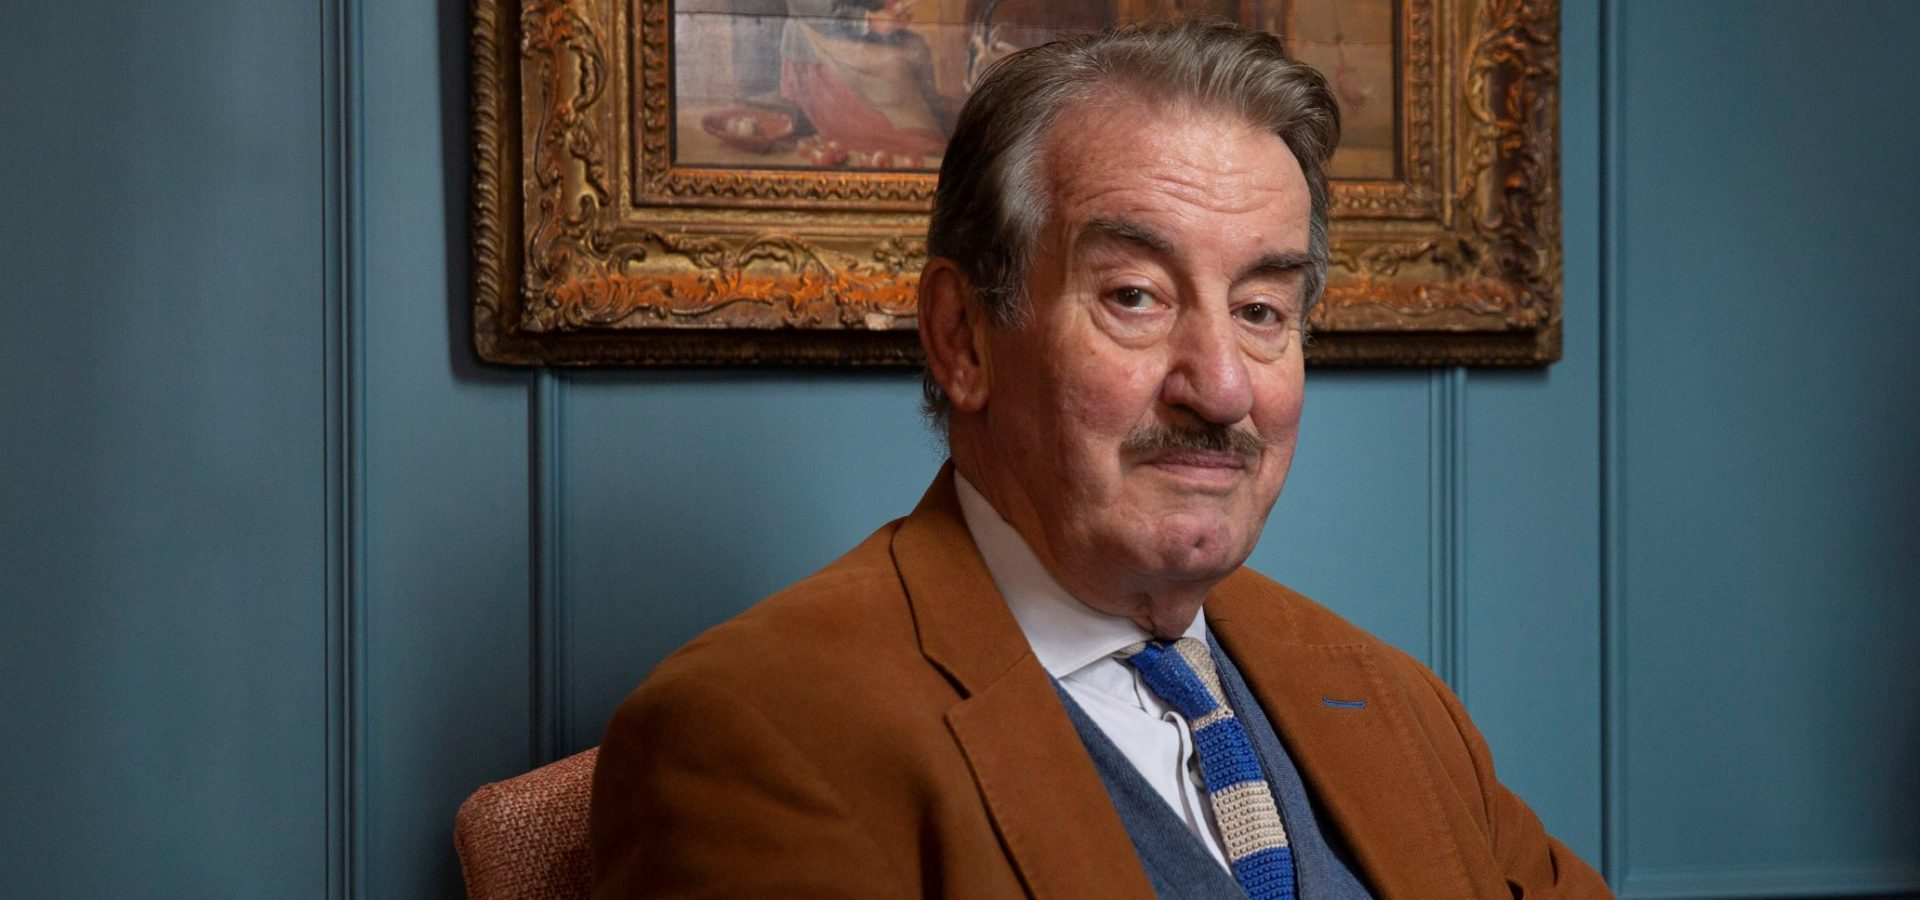 John Challis: 'You only really regret what you don't do in life'